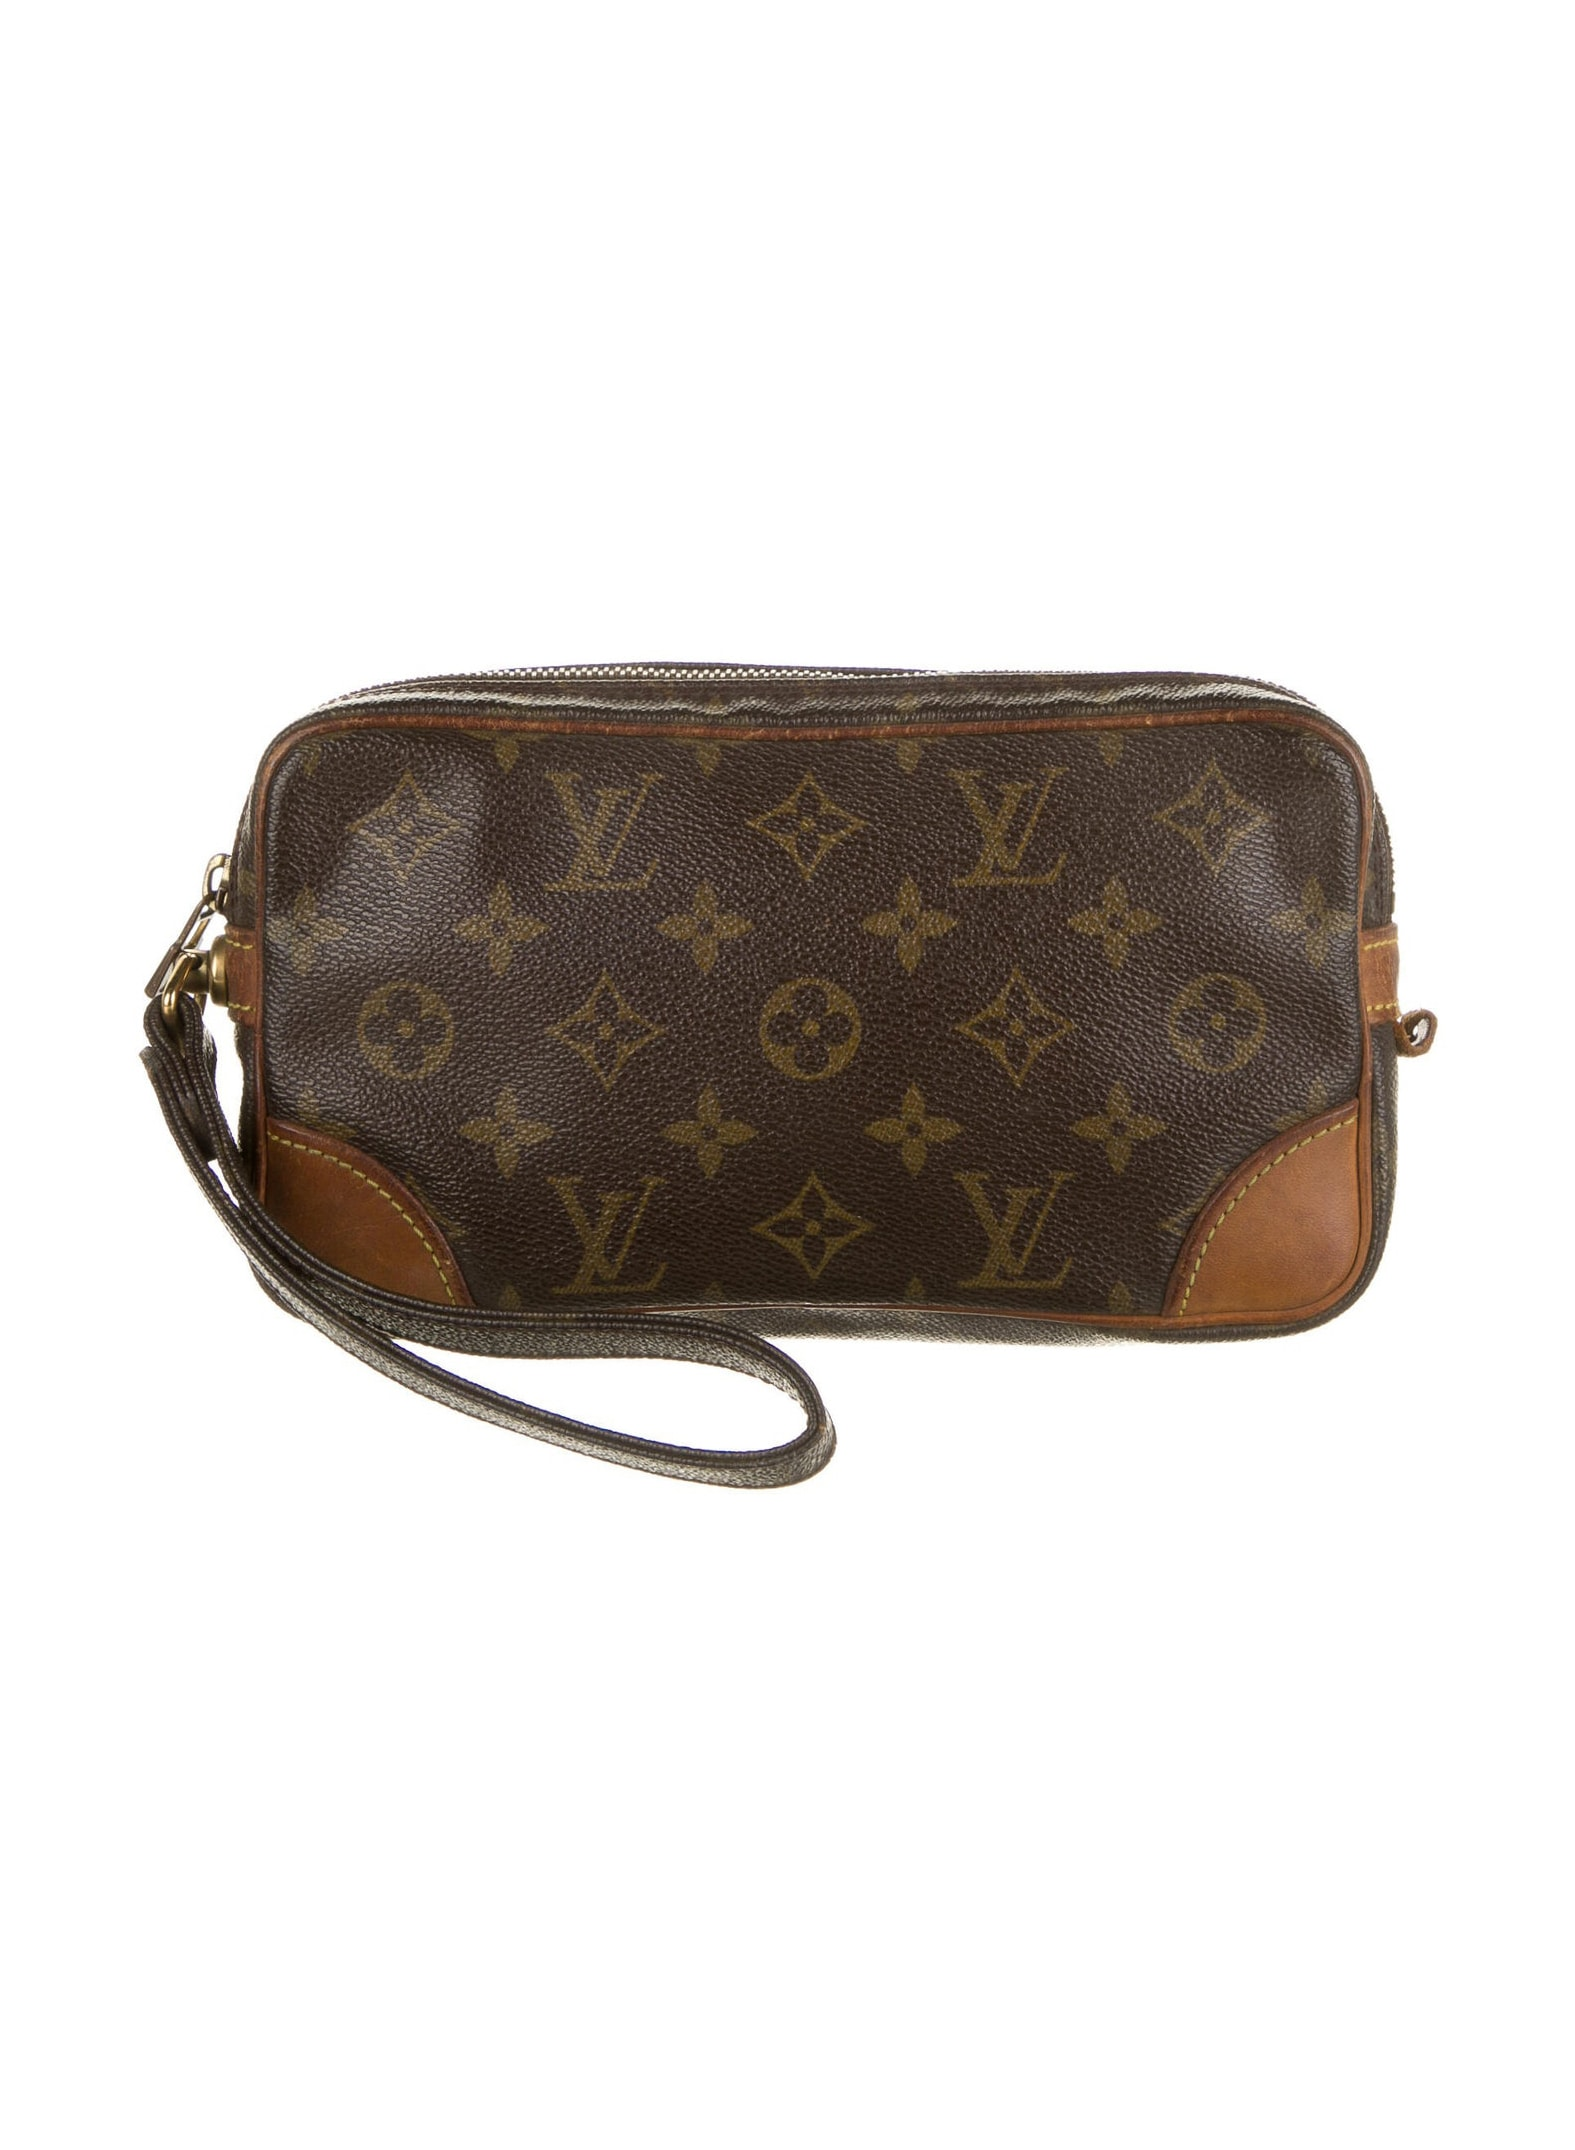 LOUIS VUITTON Vintage Monogram Marly Dragonne PM